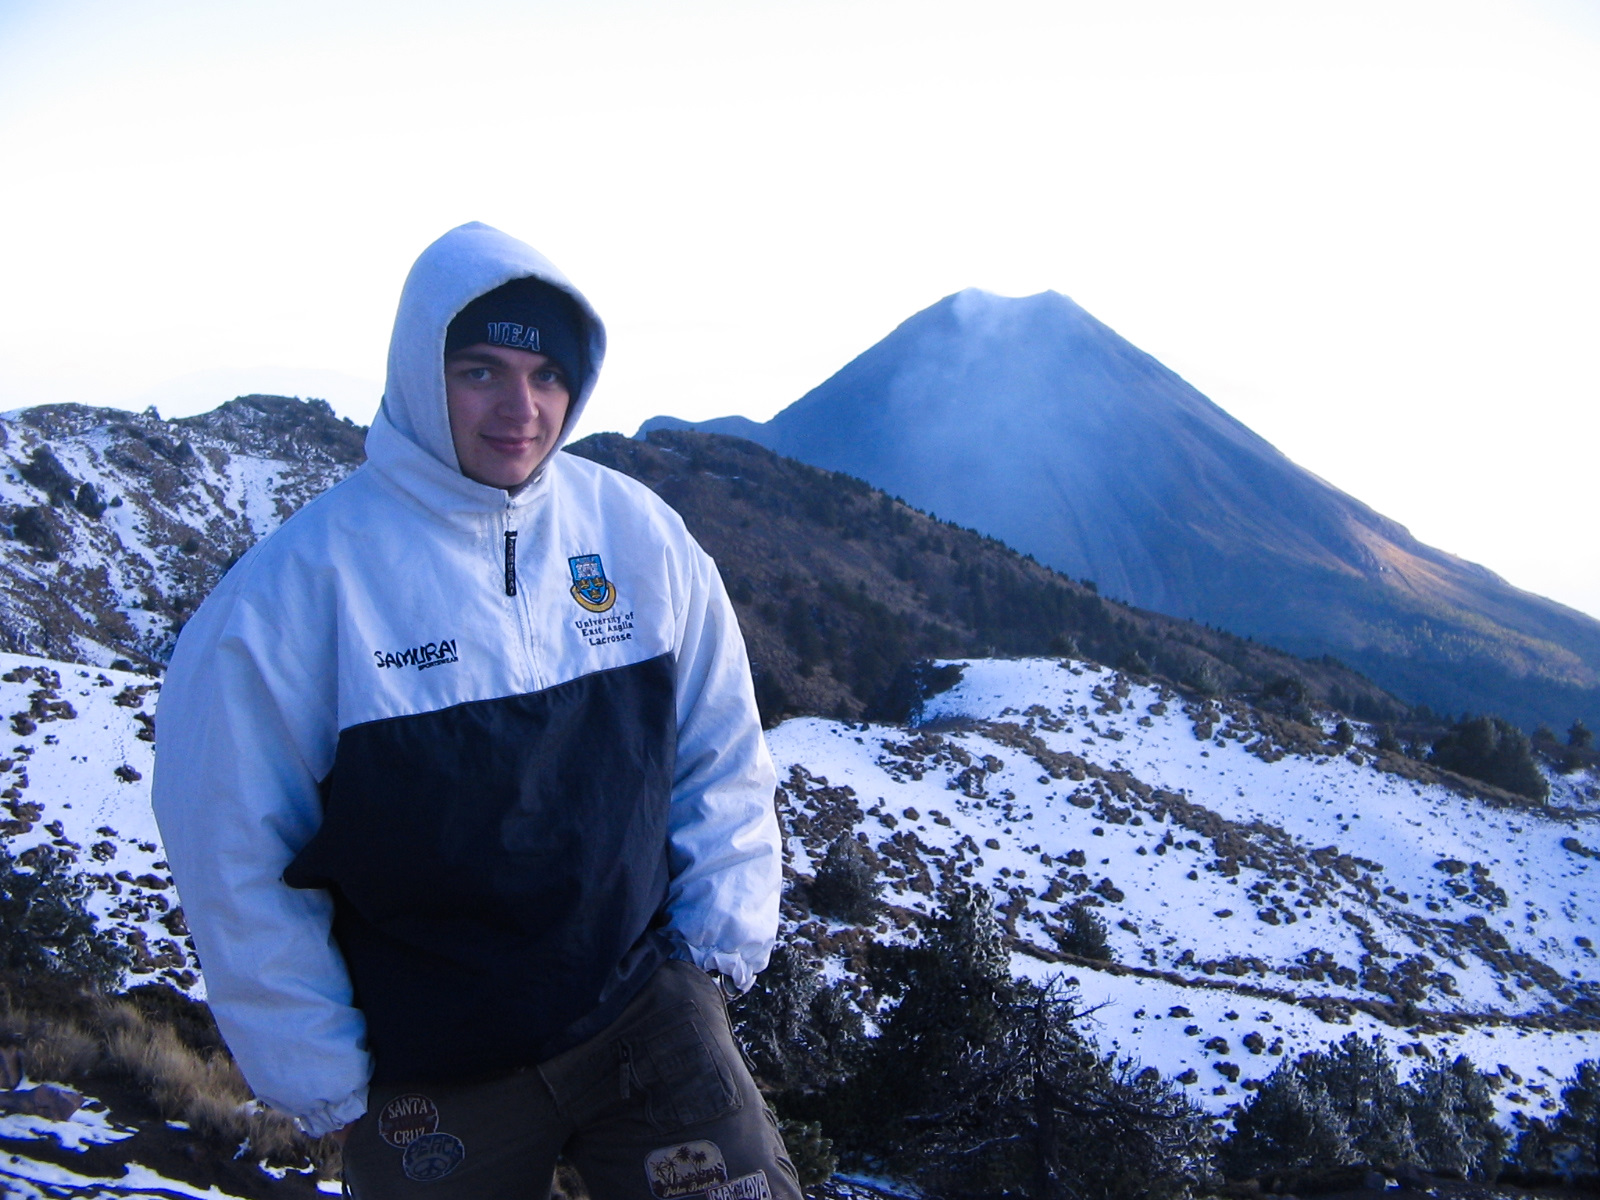 Enjoying the Mexican sunshine at 4200m...